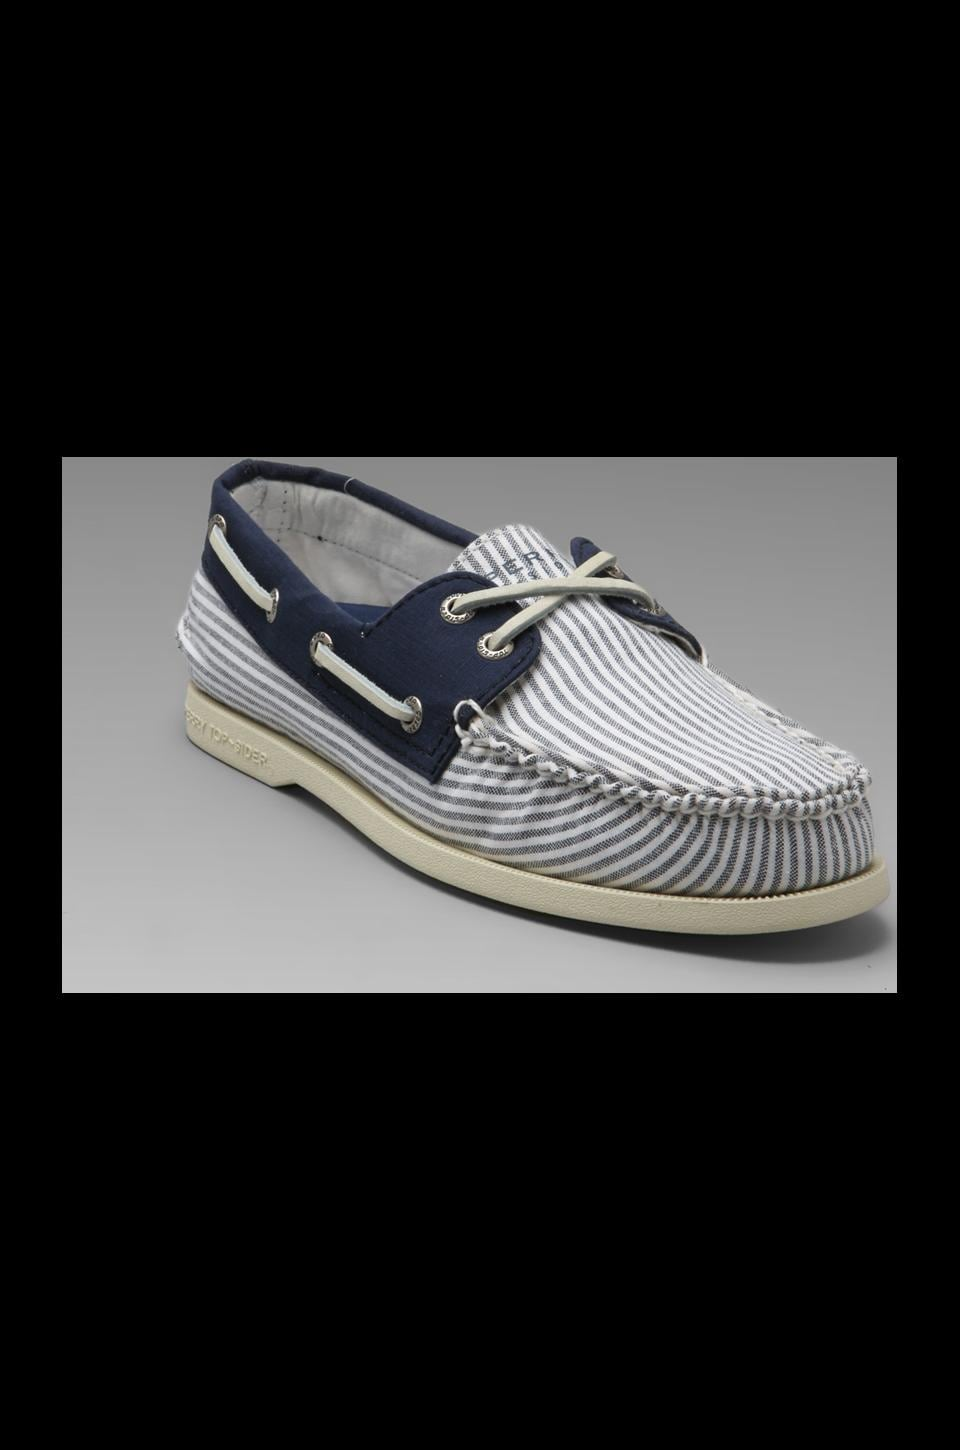 Sperry Top-Sider A/O 2-Eye Oxford Cloth in Navy Oxford